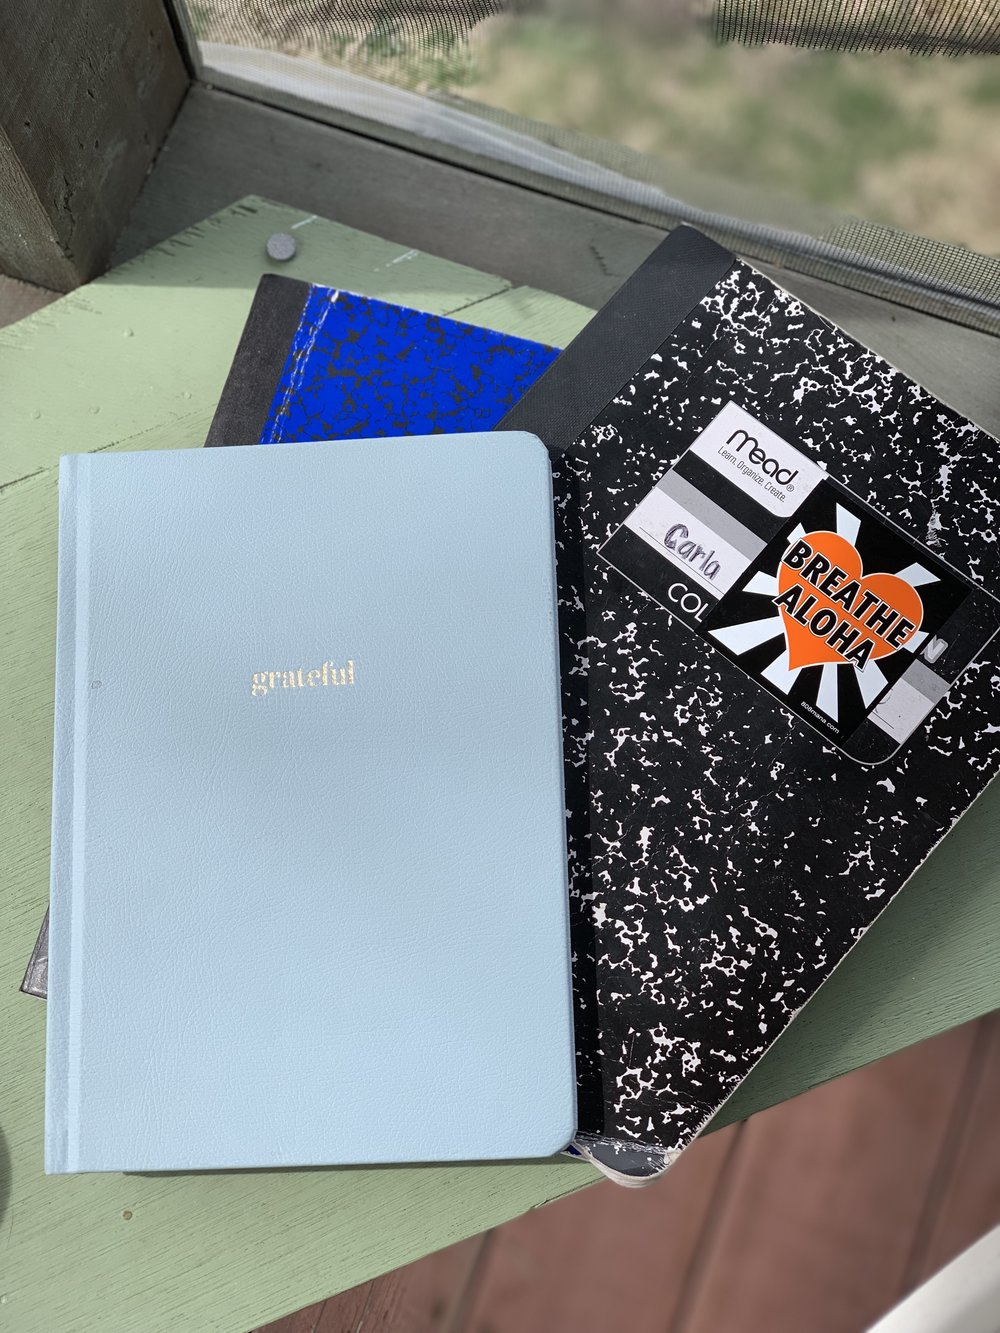 I've kept journals my whole life. I feel giddy when I see the worn and imprinted paper scribbled with my thoughts.